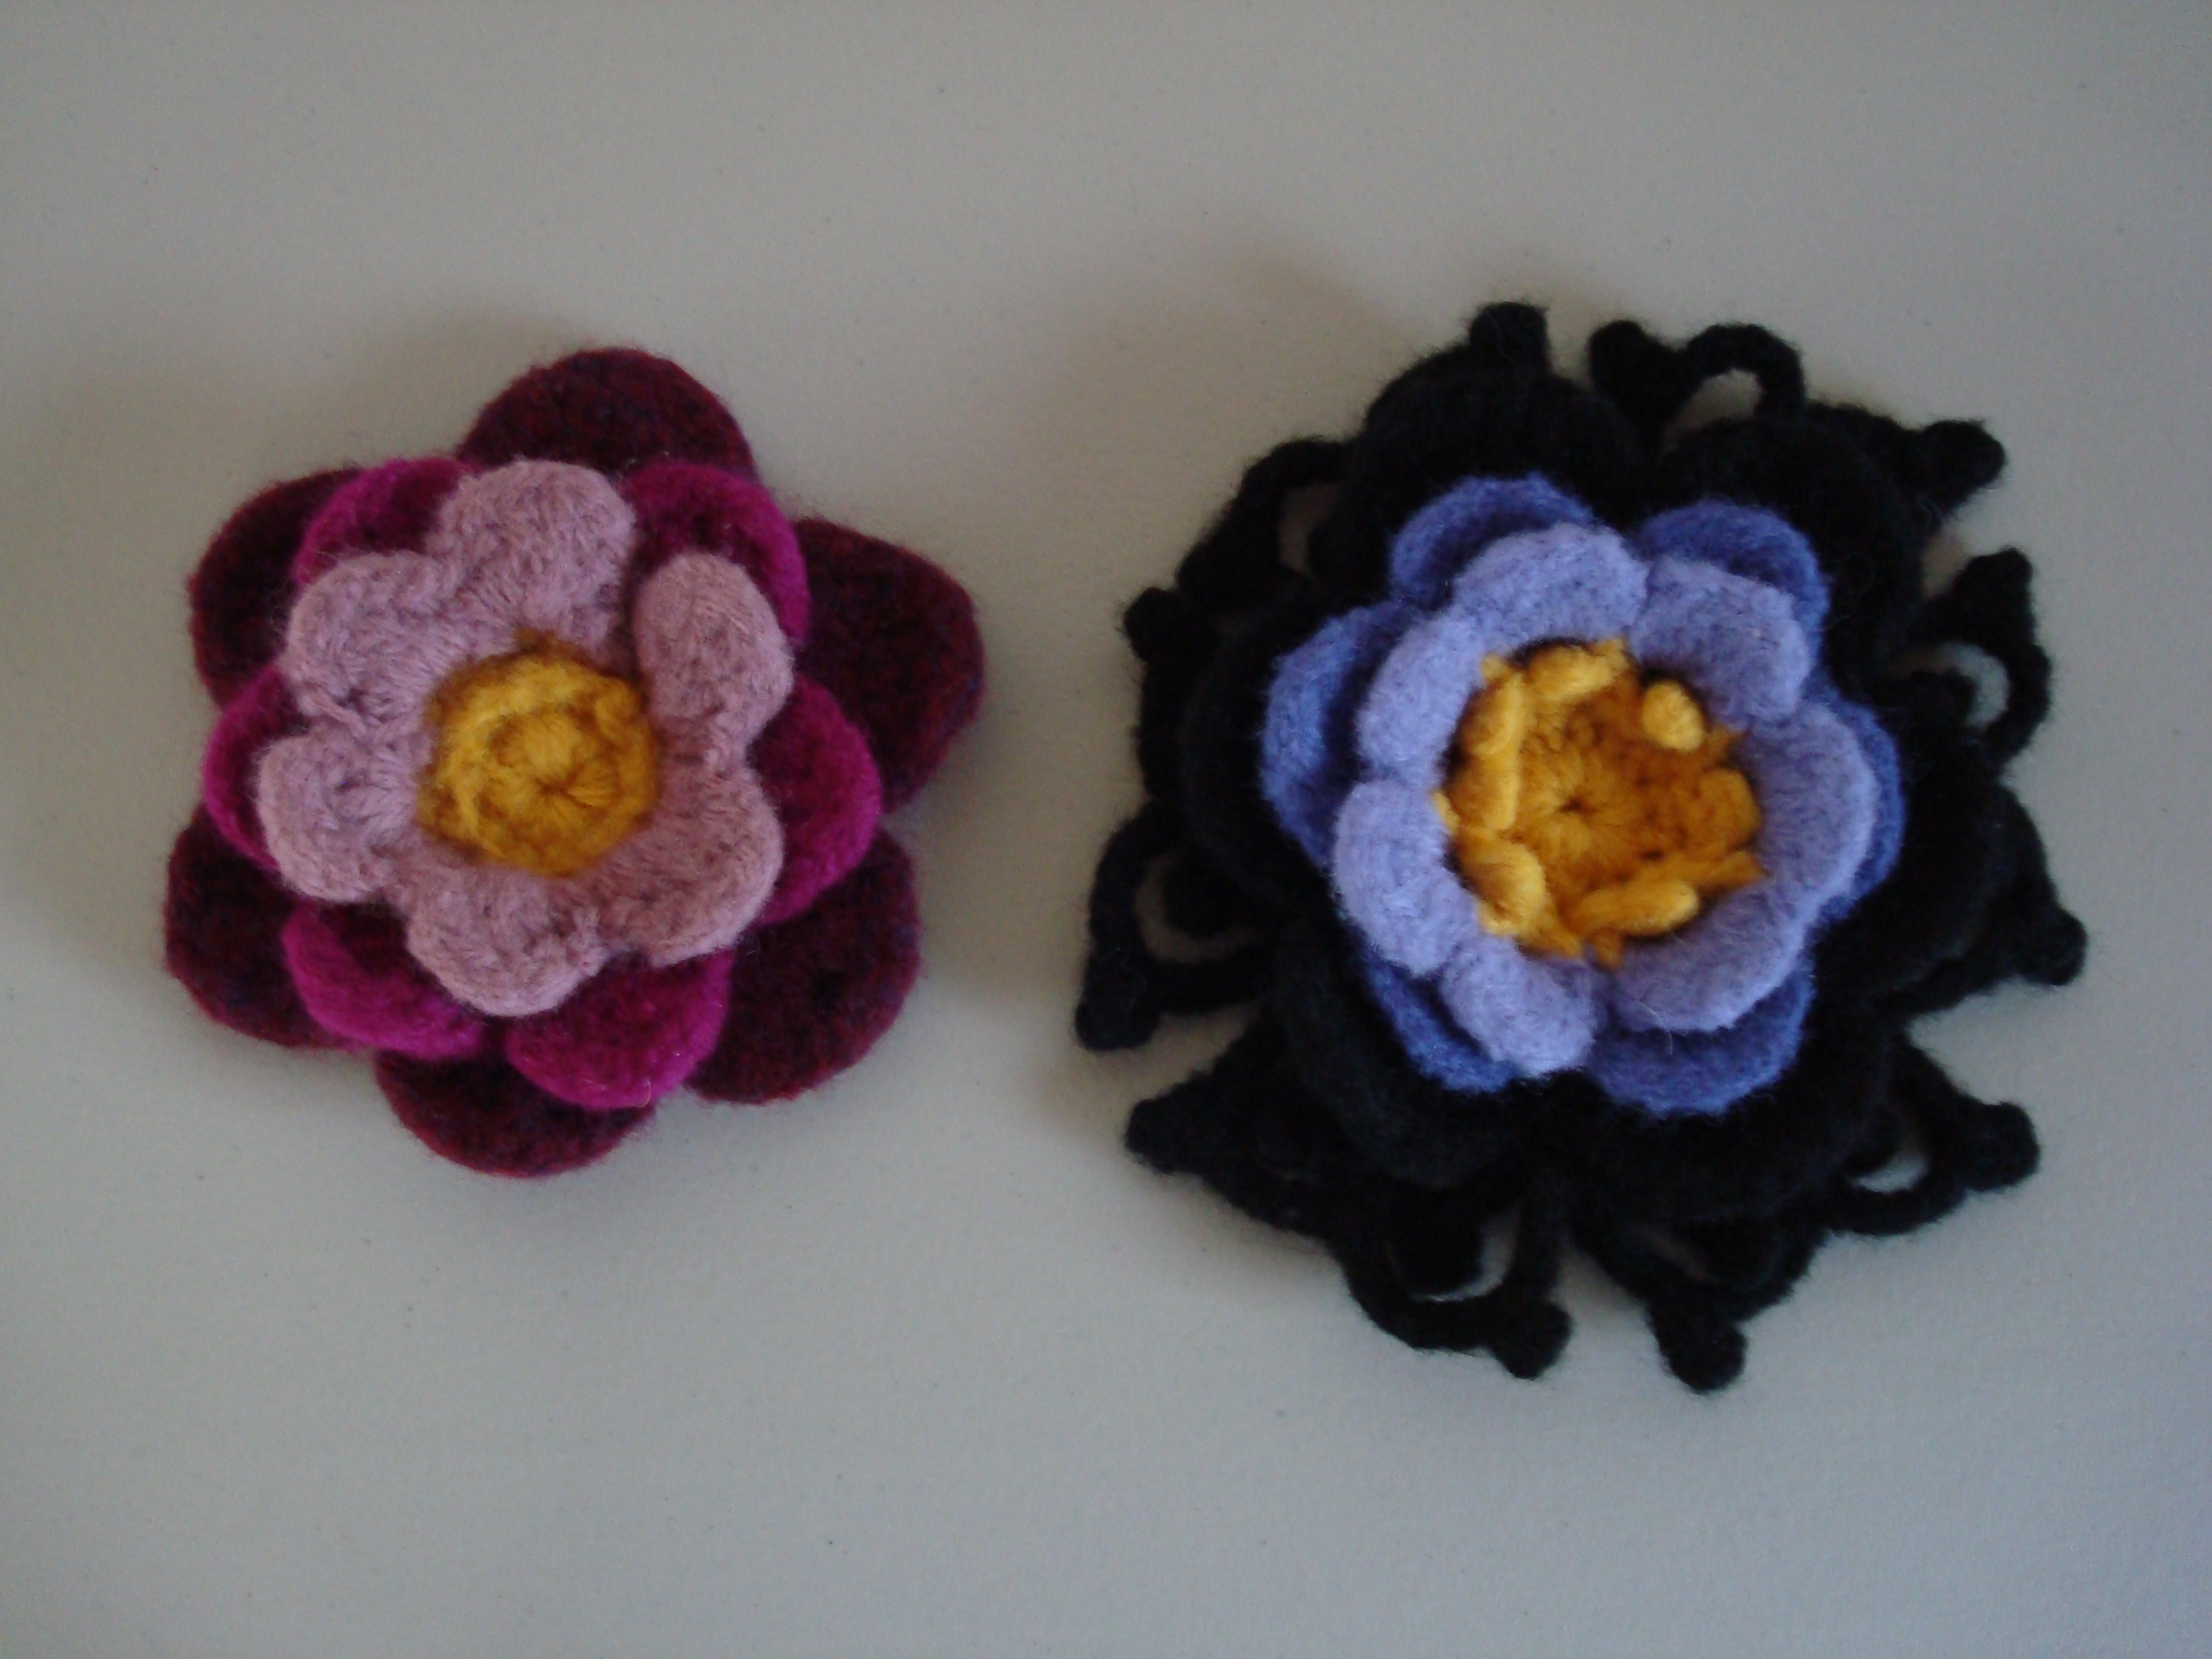 These felted crochet flowers turned out better than I expected.